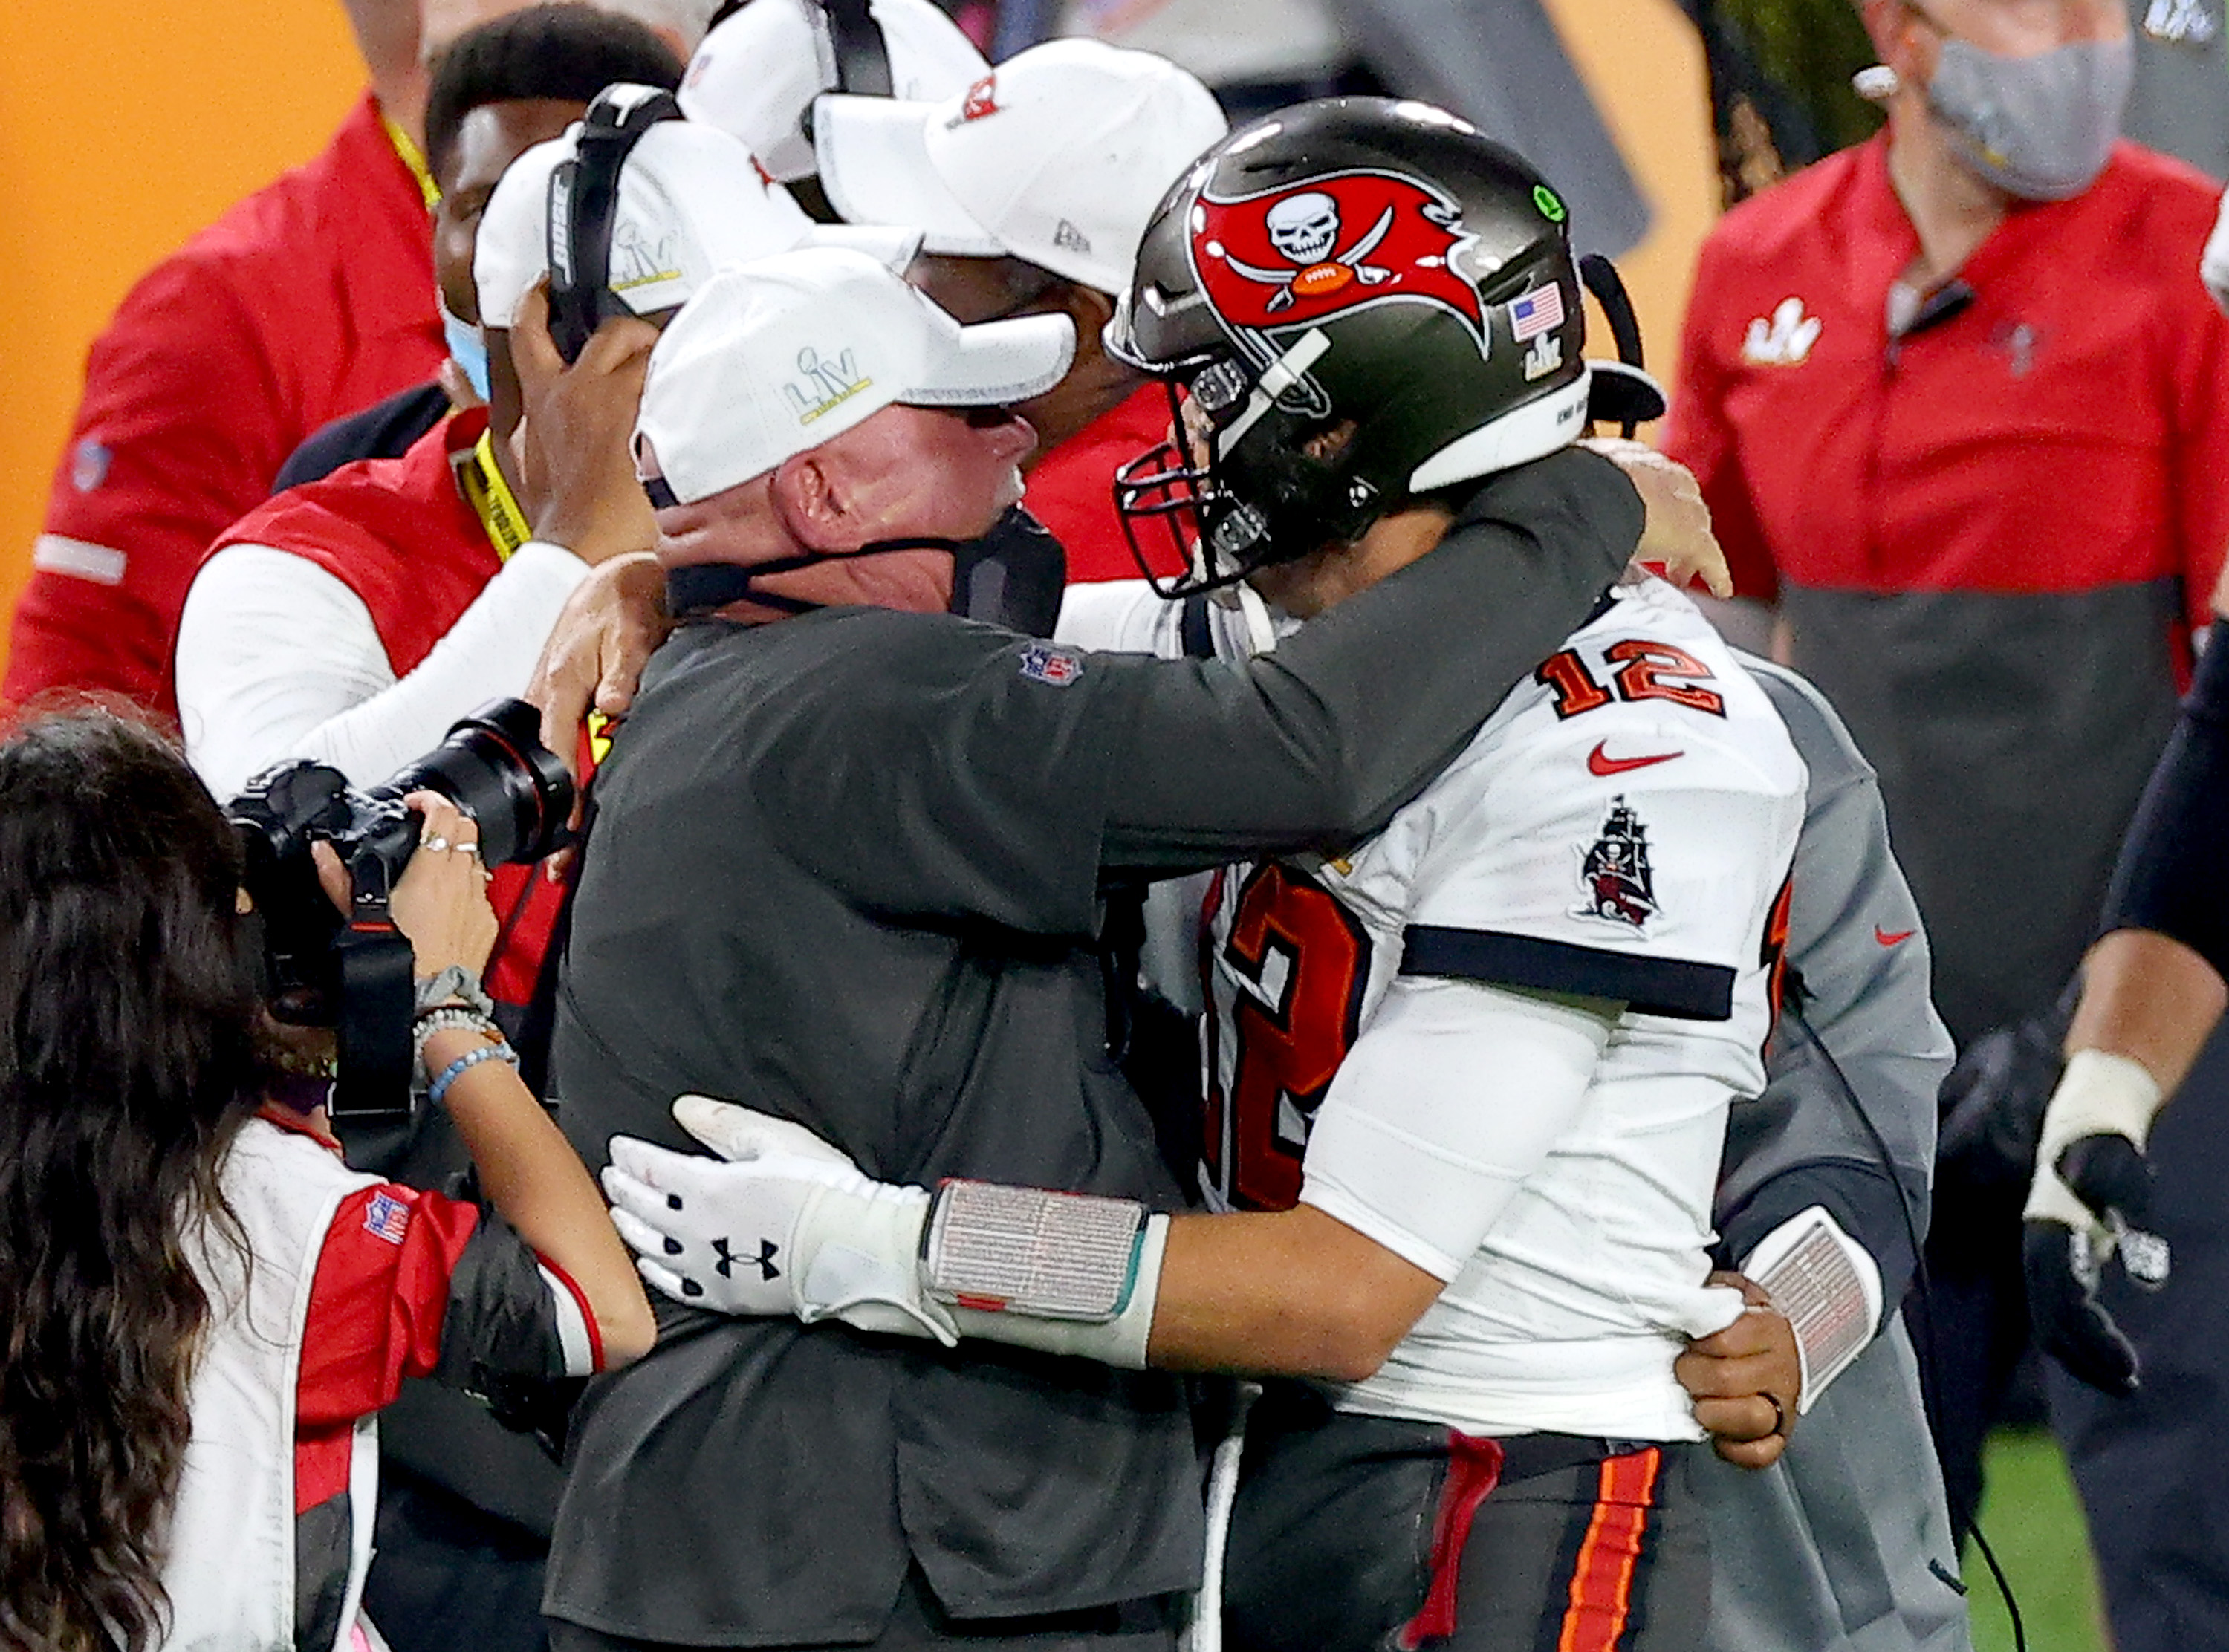 Tom Brady and Bruce Arians celebrate after winning the Super Bowl